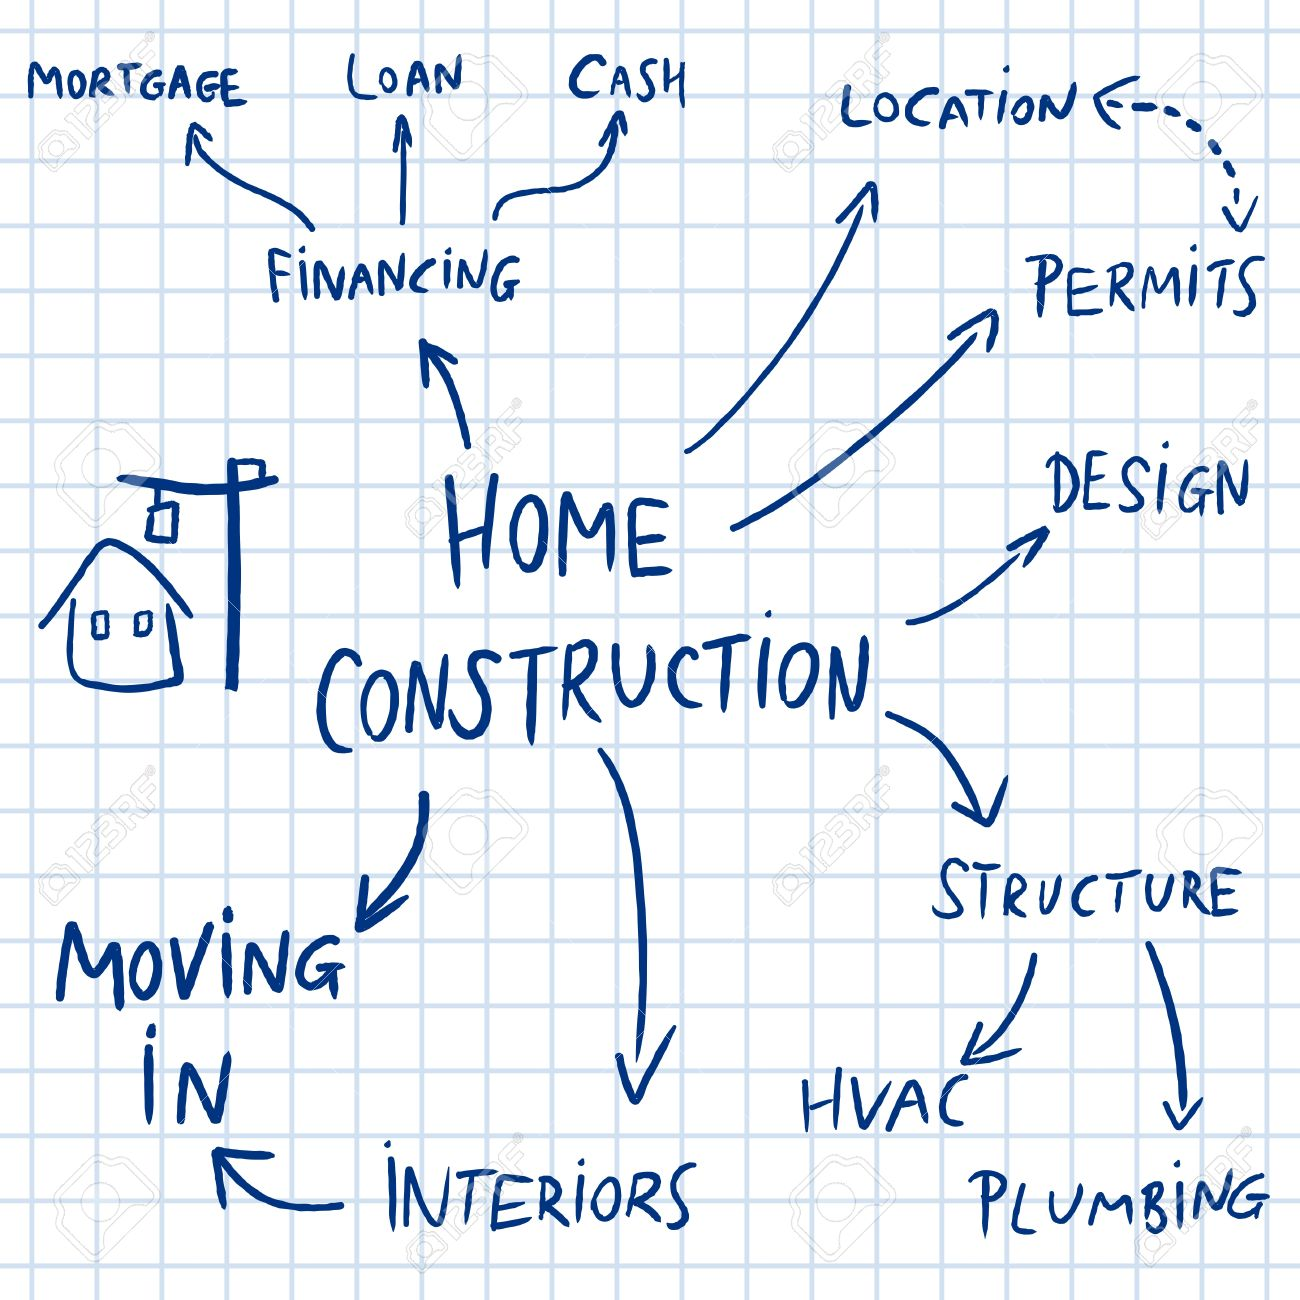 Home construction mind map flowchart   text doodle related to house  development  Stock Vector. Home Construction Mind Map Flowchart   Text Doodle Related To